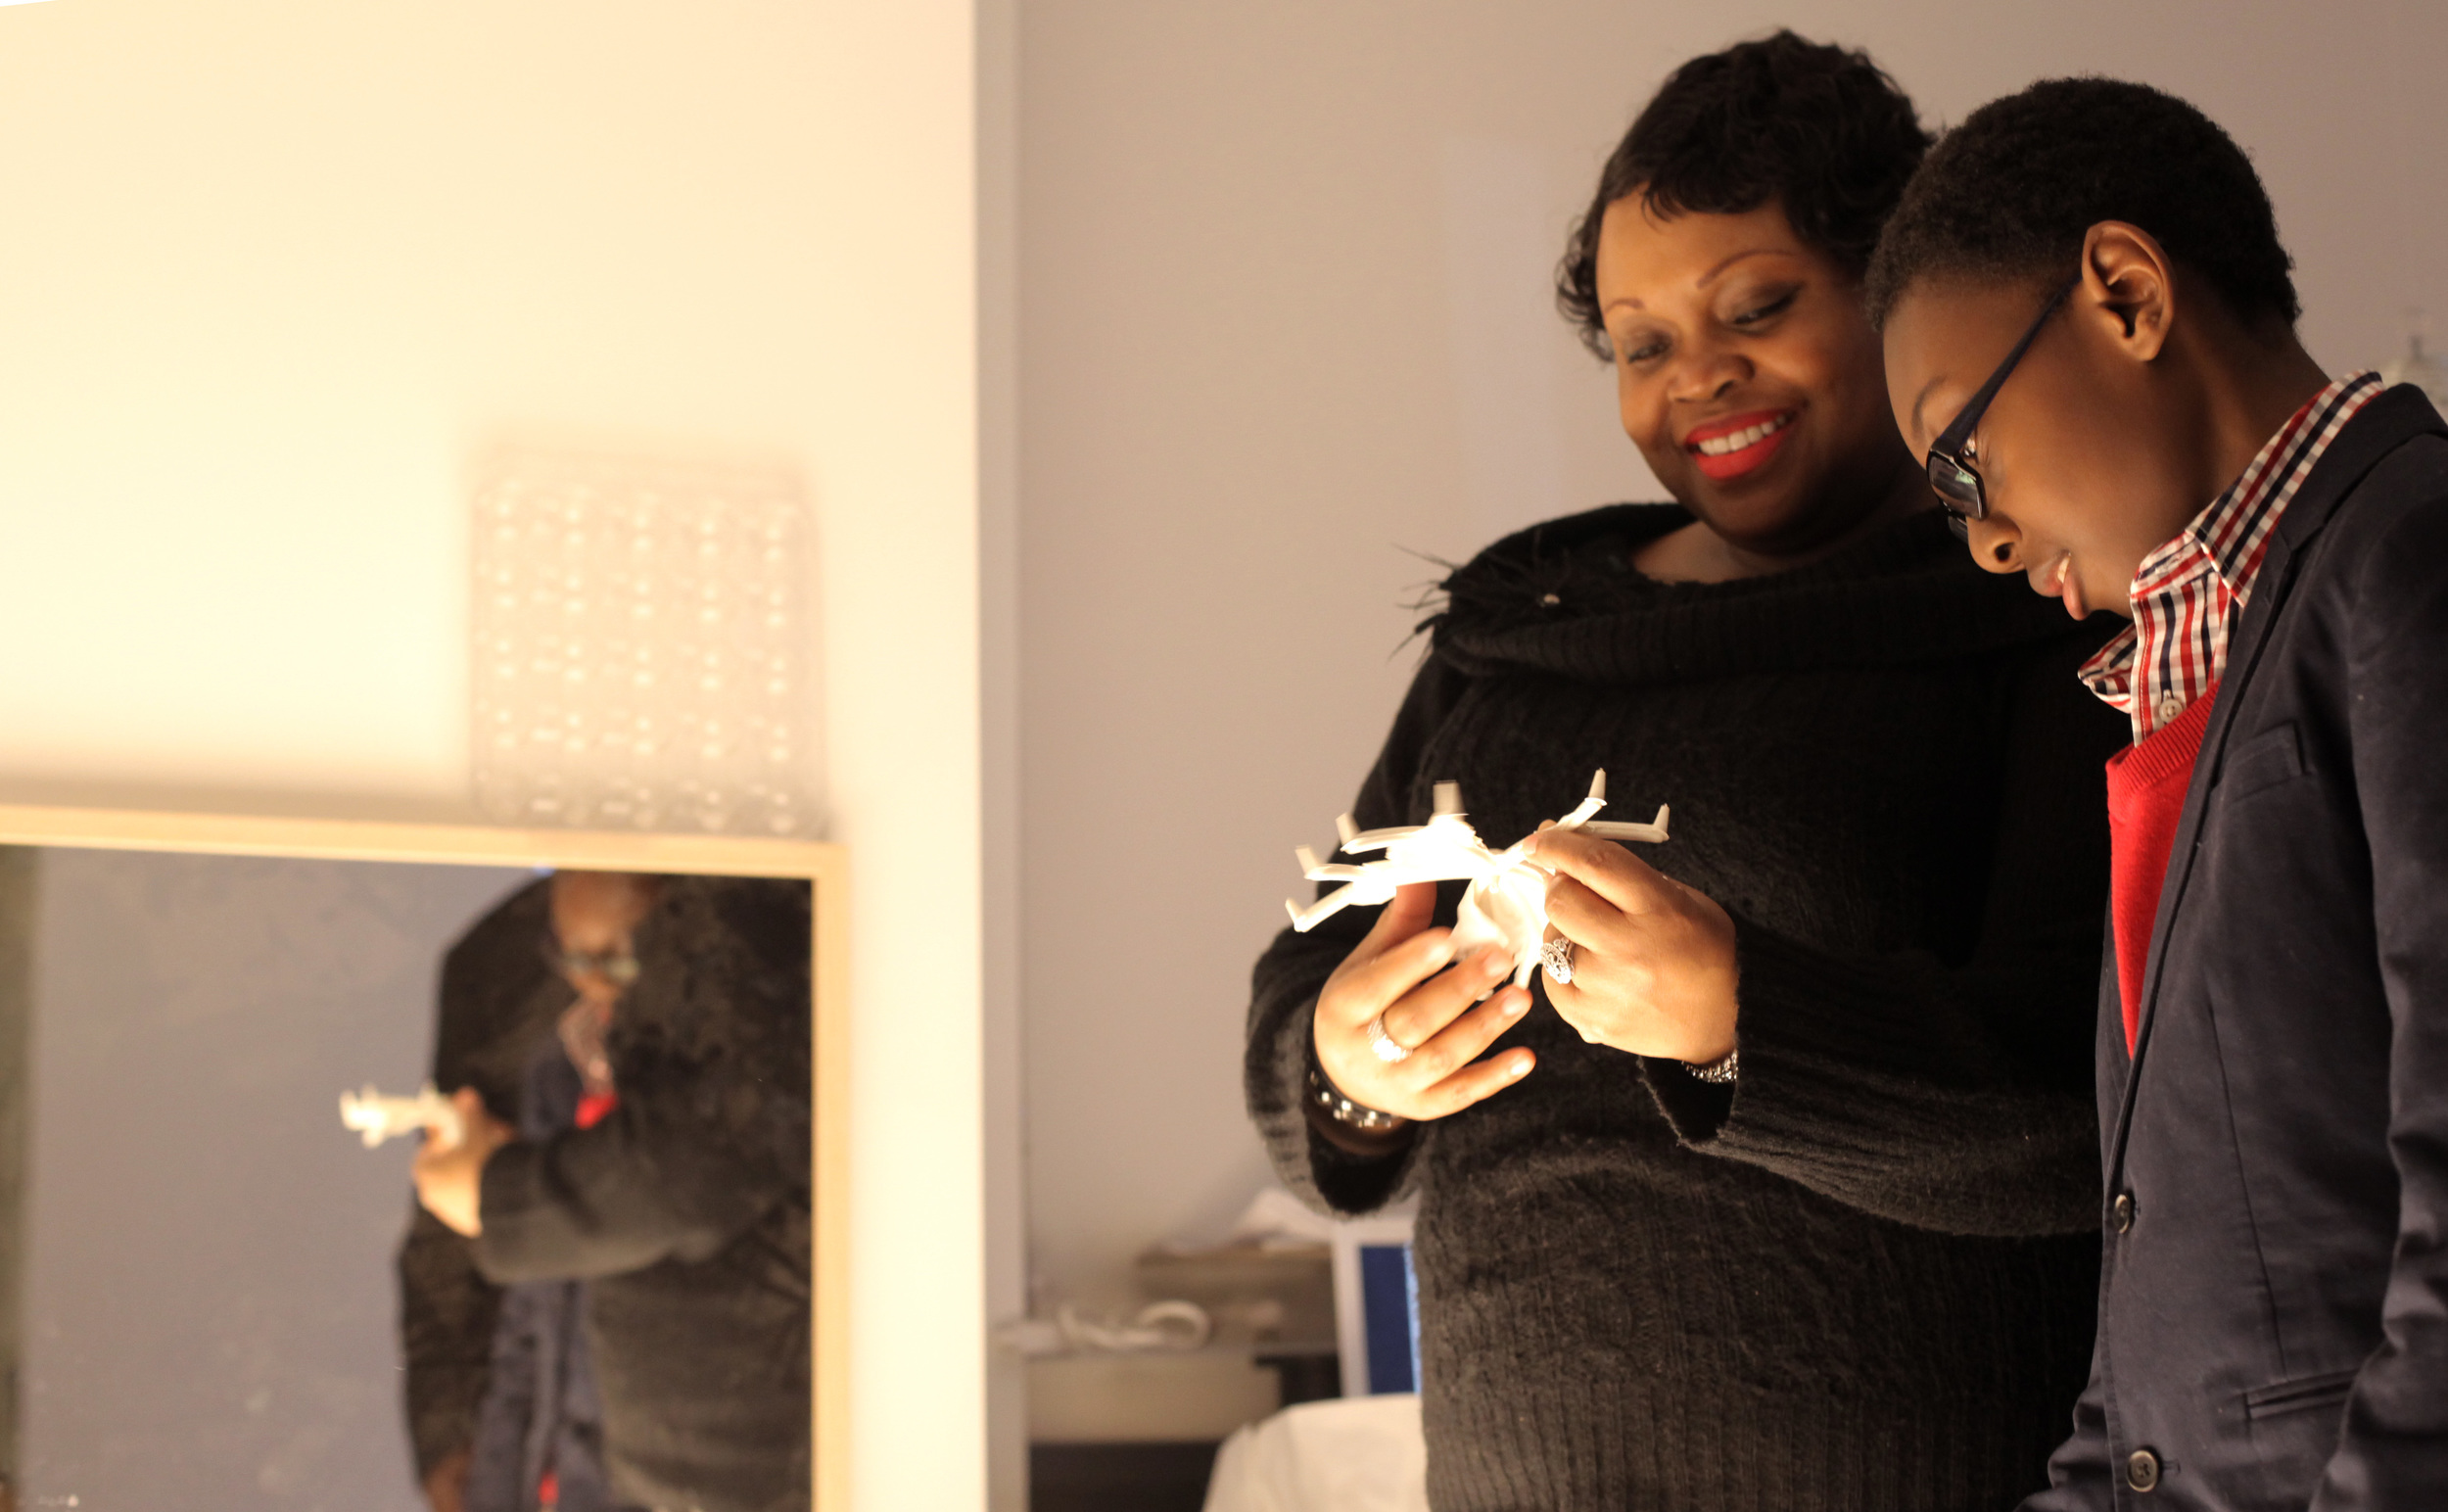 Nakoley Renville, principal of PS 208KE in Flatbush, Brooklyn, enjoys the Light Atelier with her son.